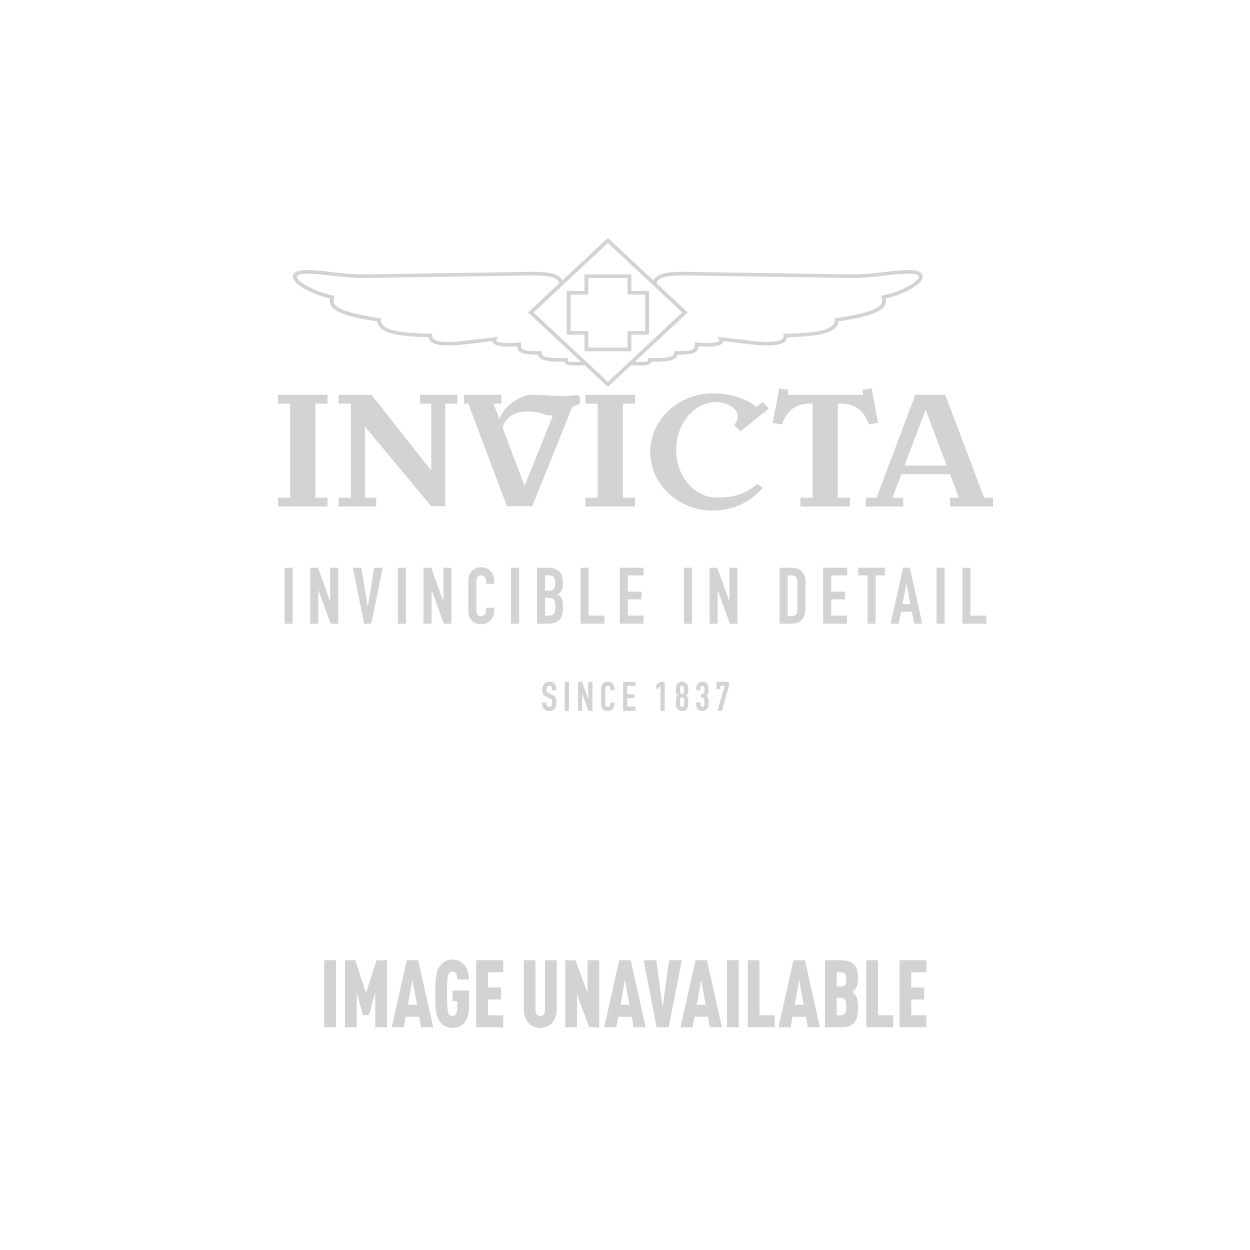 Invicta Bolt Swiss Made Quartz Watch - Rose Gold, Stainless Steel case with Steel, Rose Gold tone Stainless Steel band - Model 15277